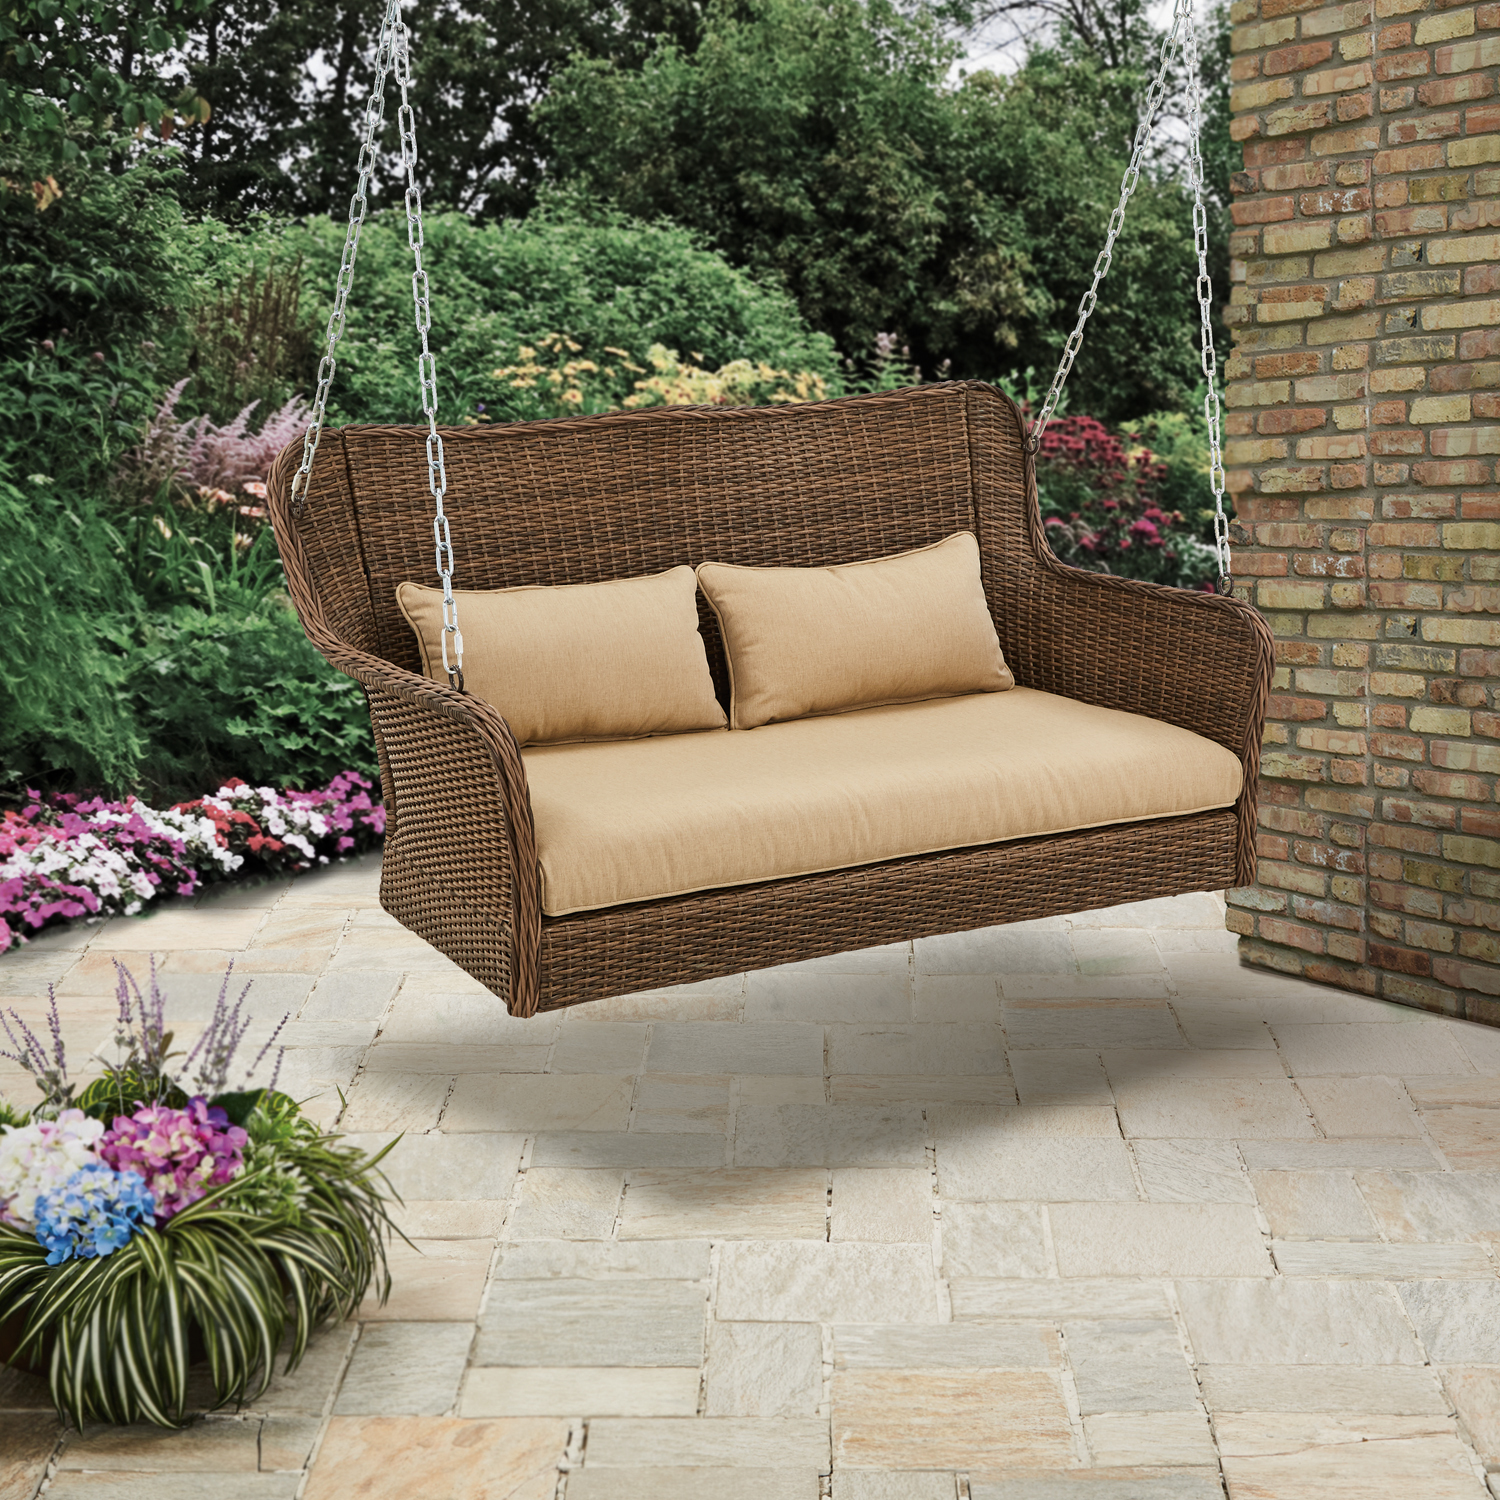 Wicker Outdoor Porch Swing with Cushions Color: Light Brown